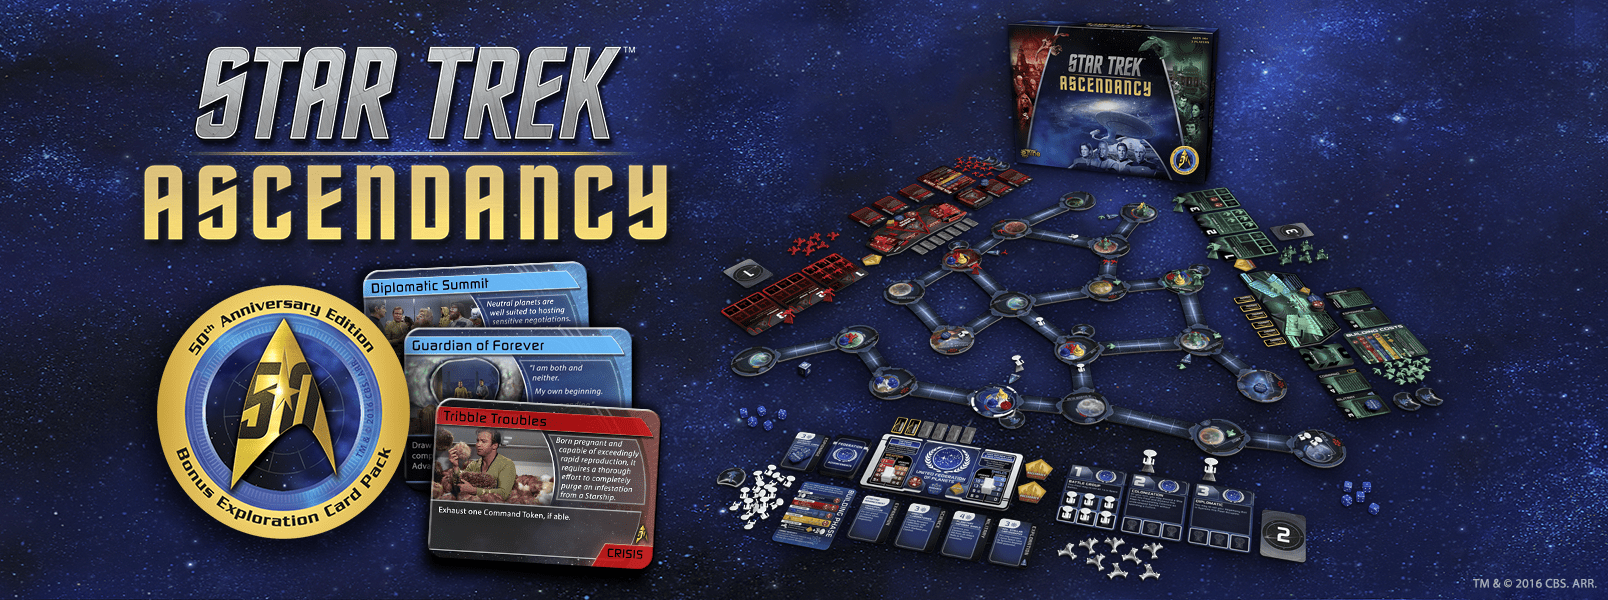 Image result for star trek ascendancy